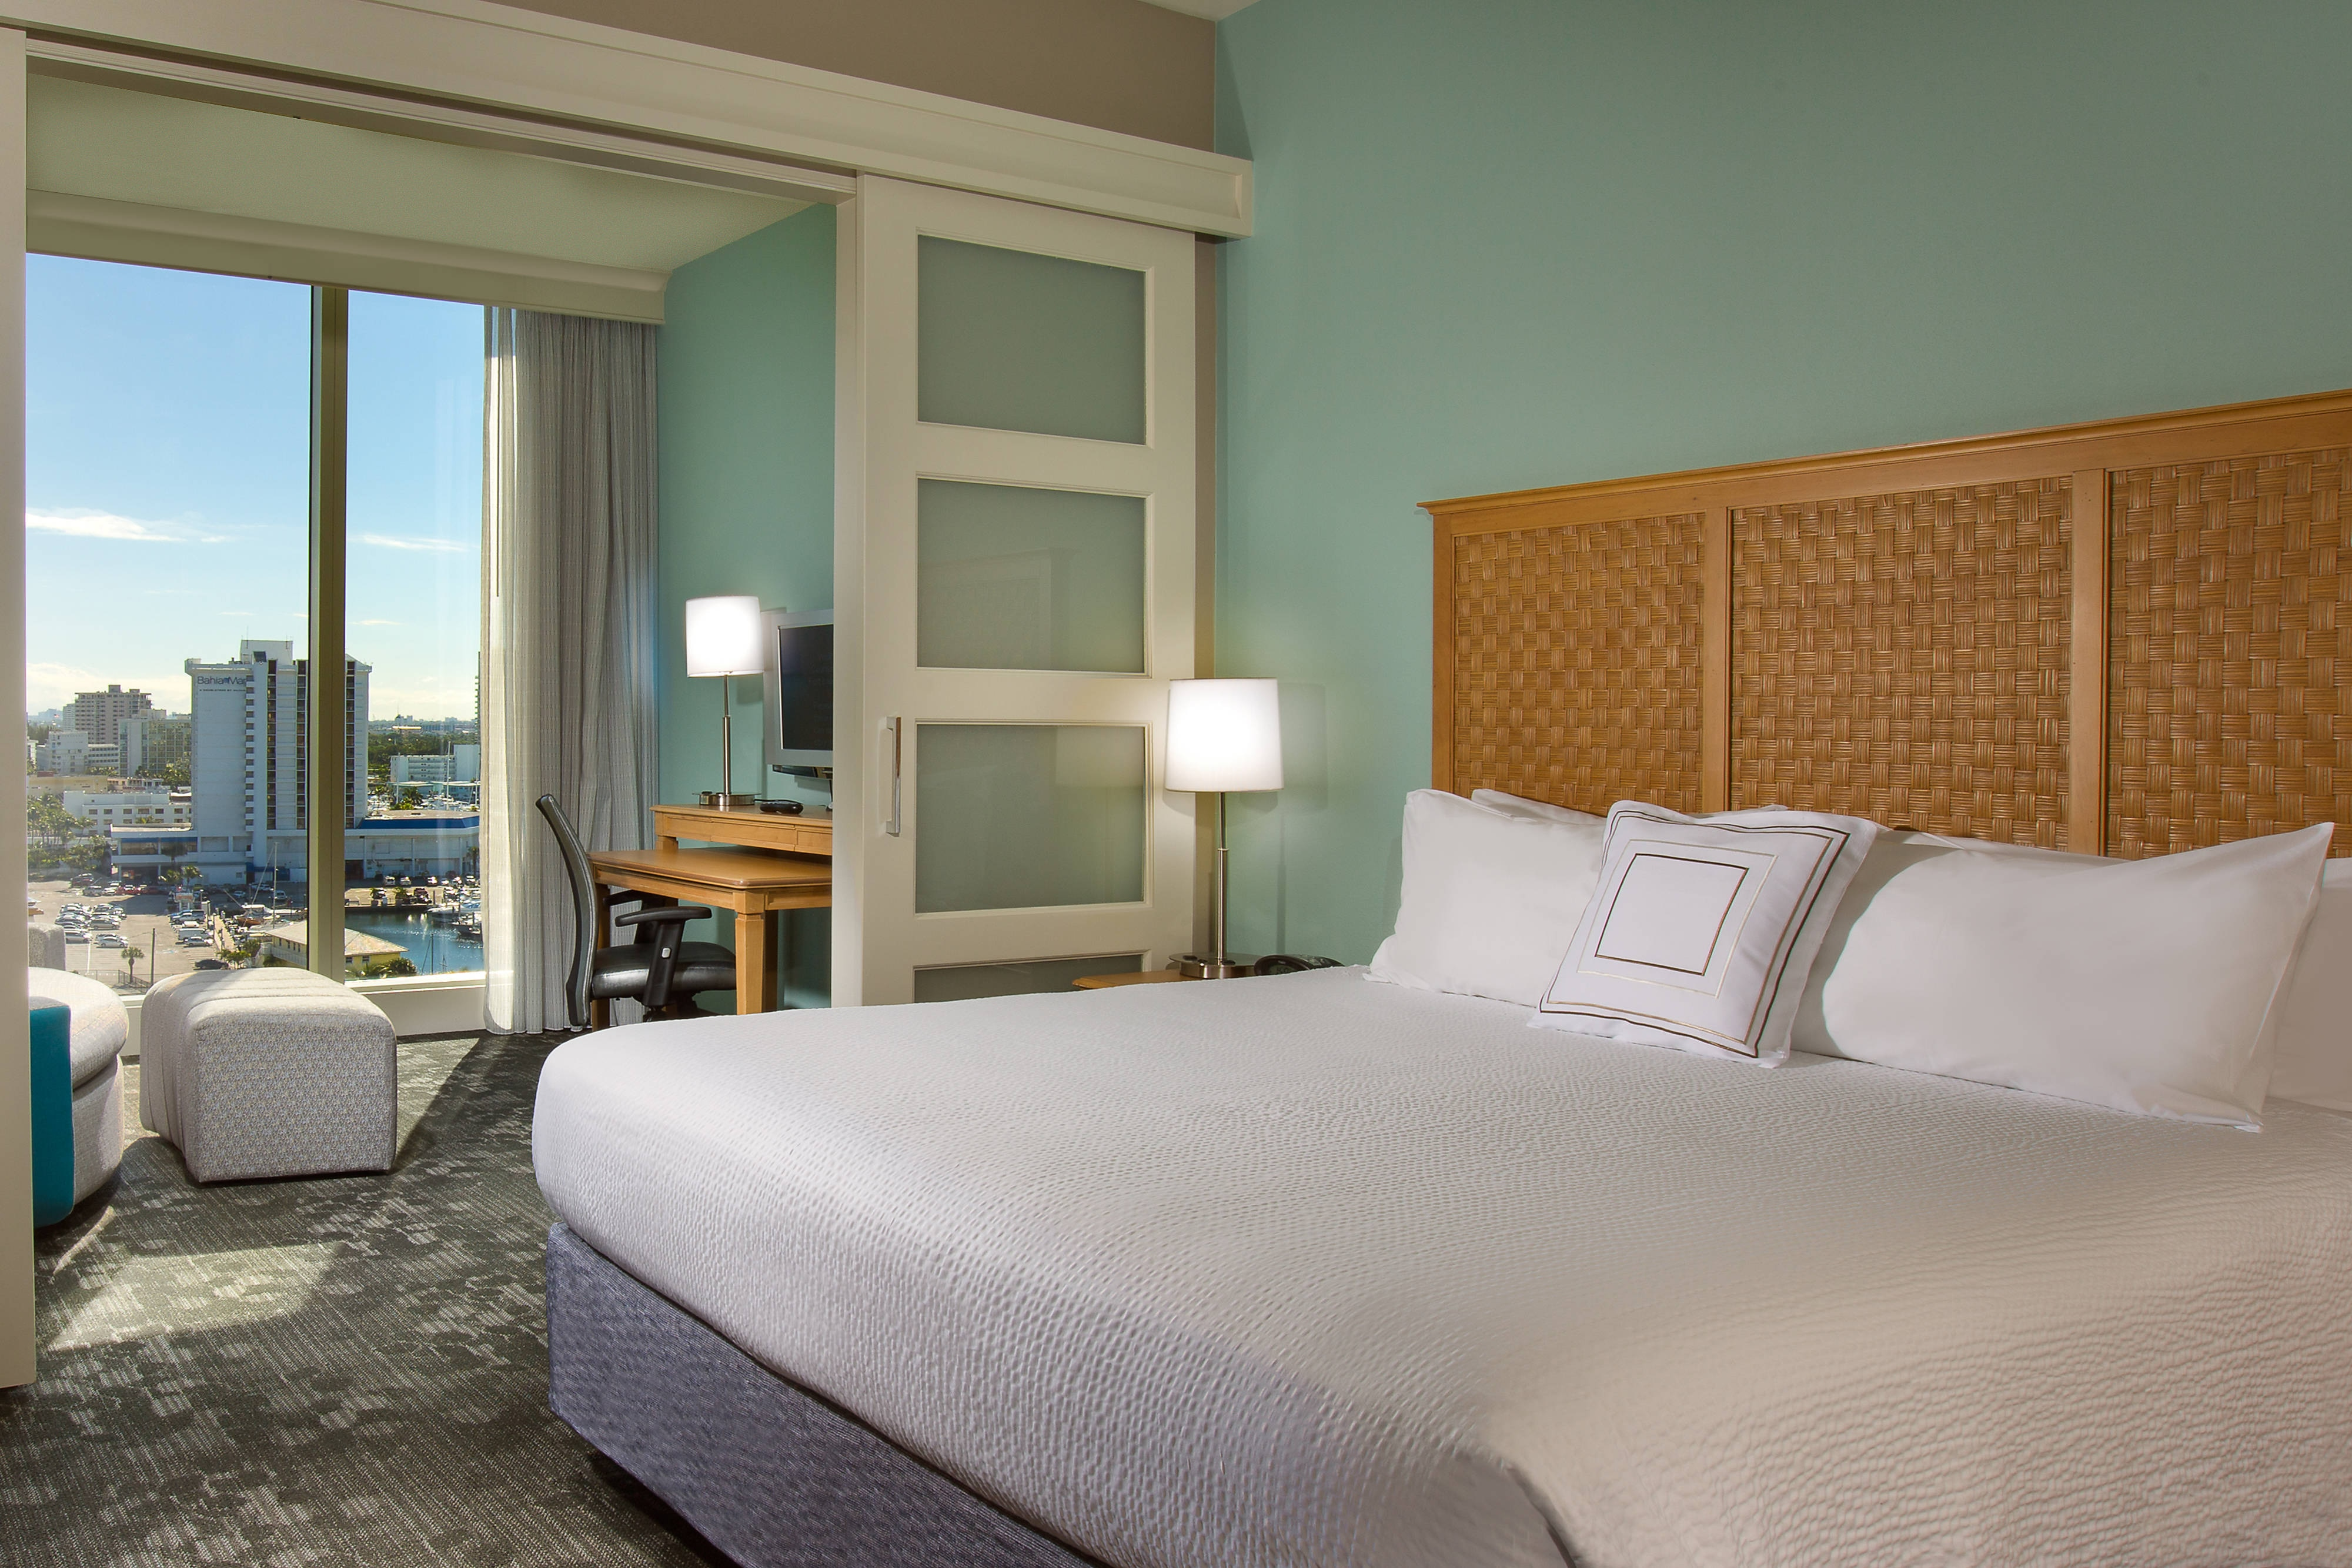 Dormitorio de la suite King del Courtyard Fort Lauderdale Beach